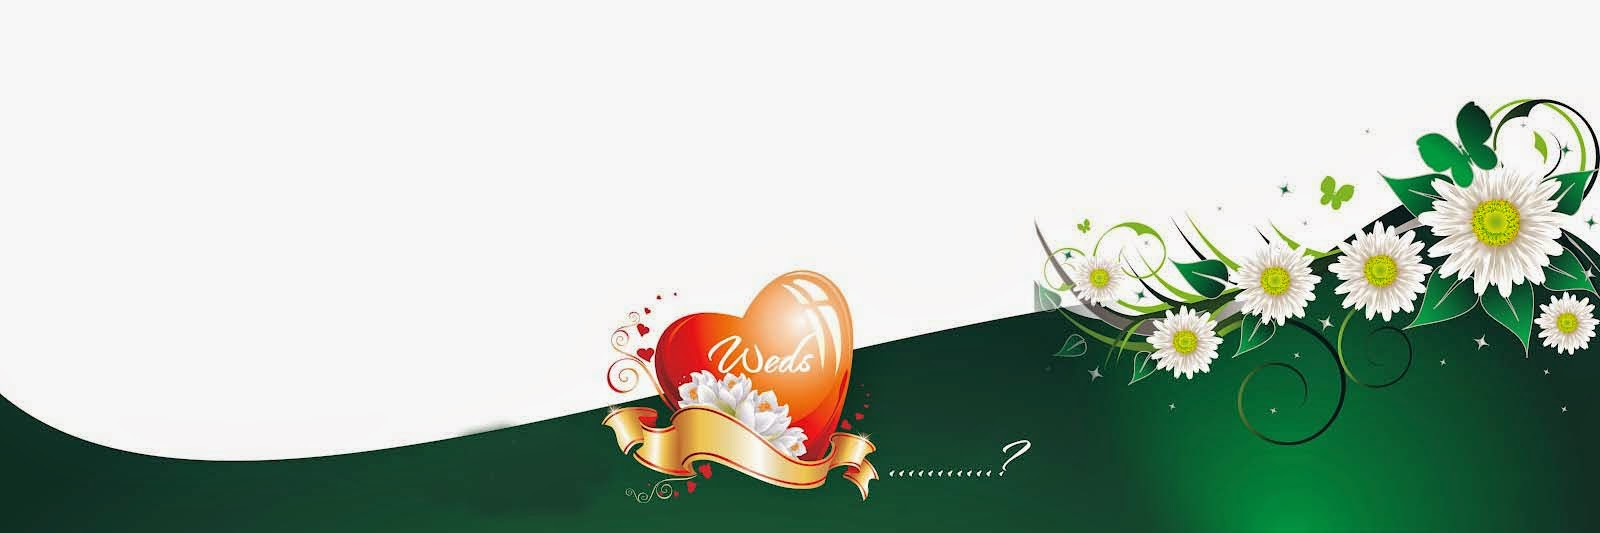 indian clipart psd - photo #47